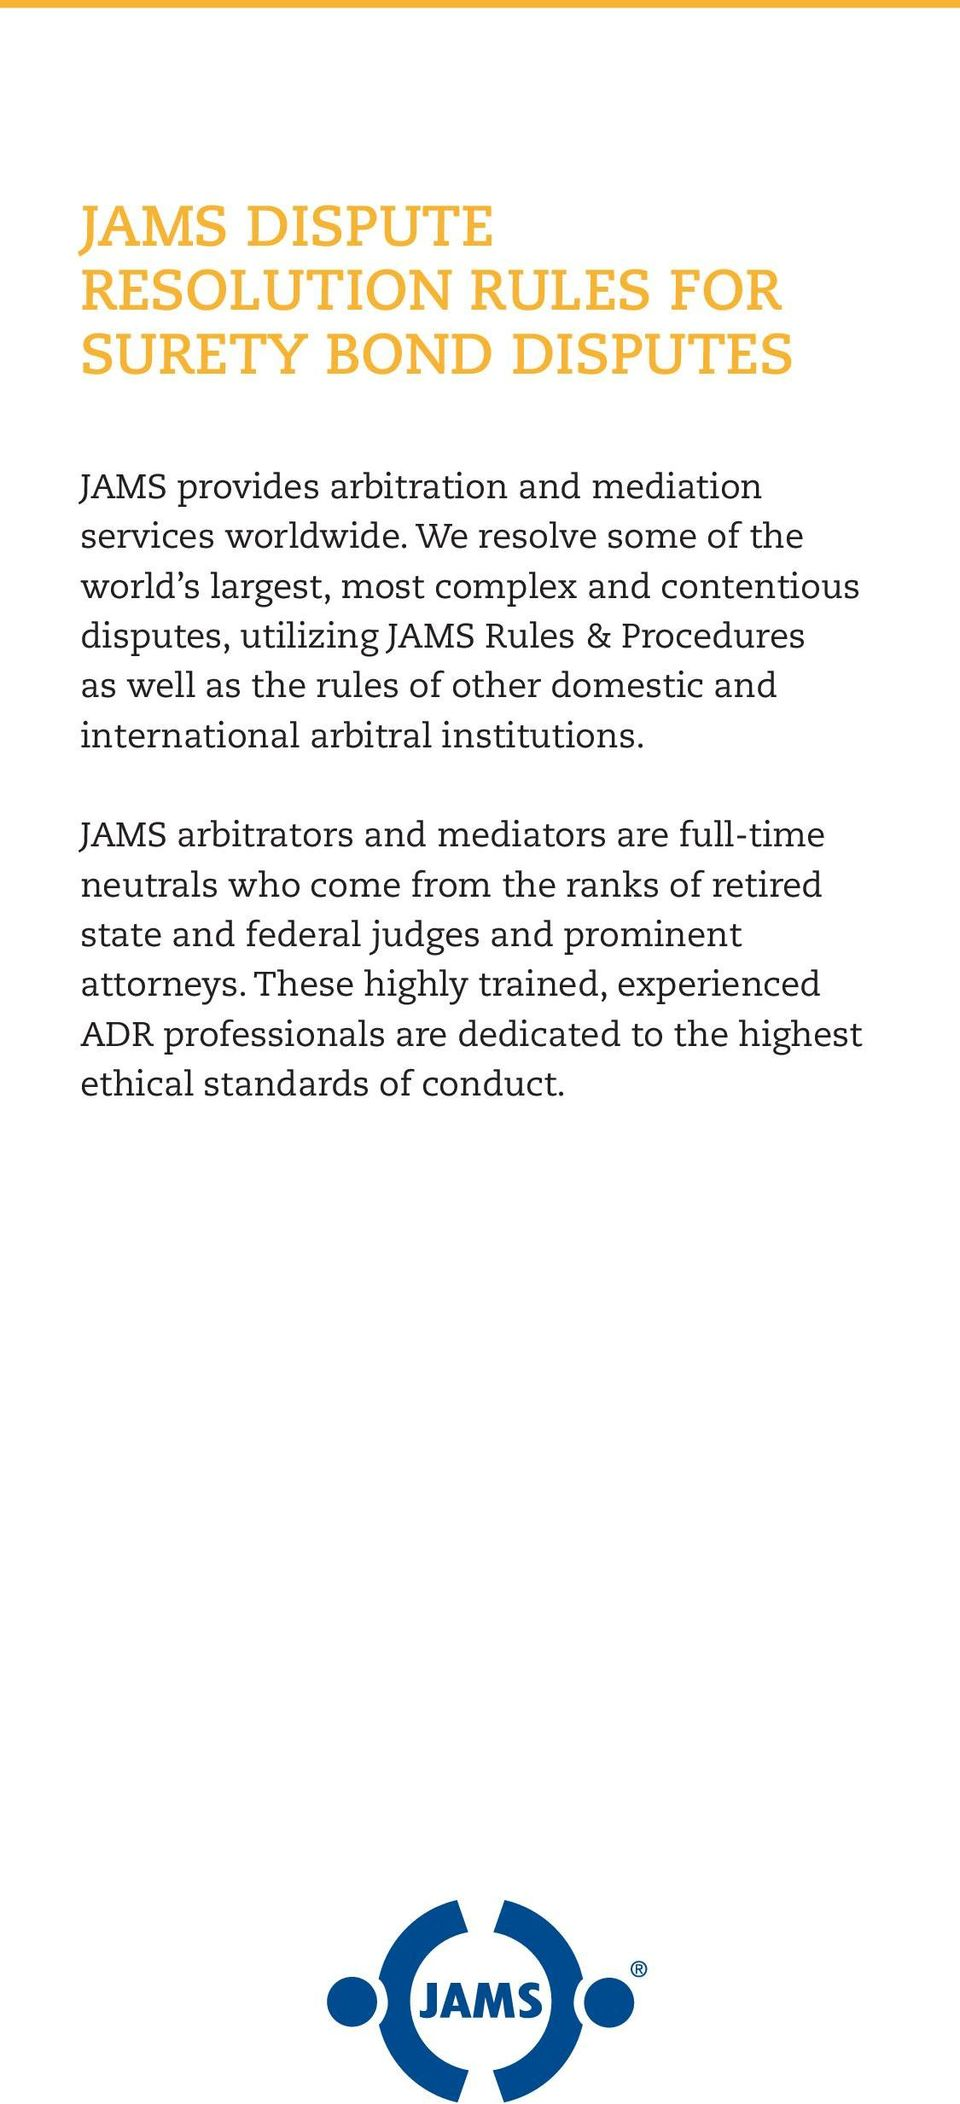 other domestic and international arbitral institutions.